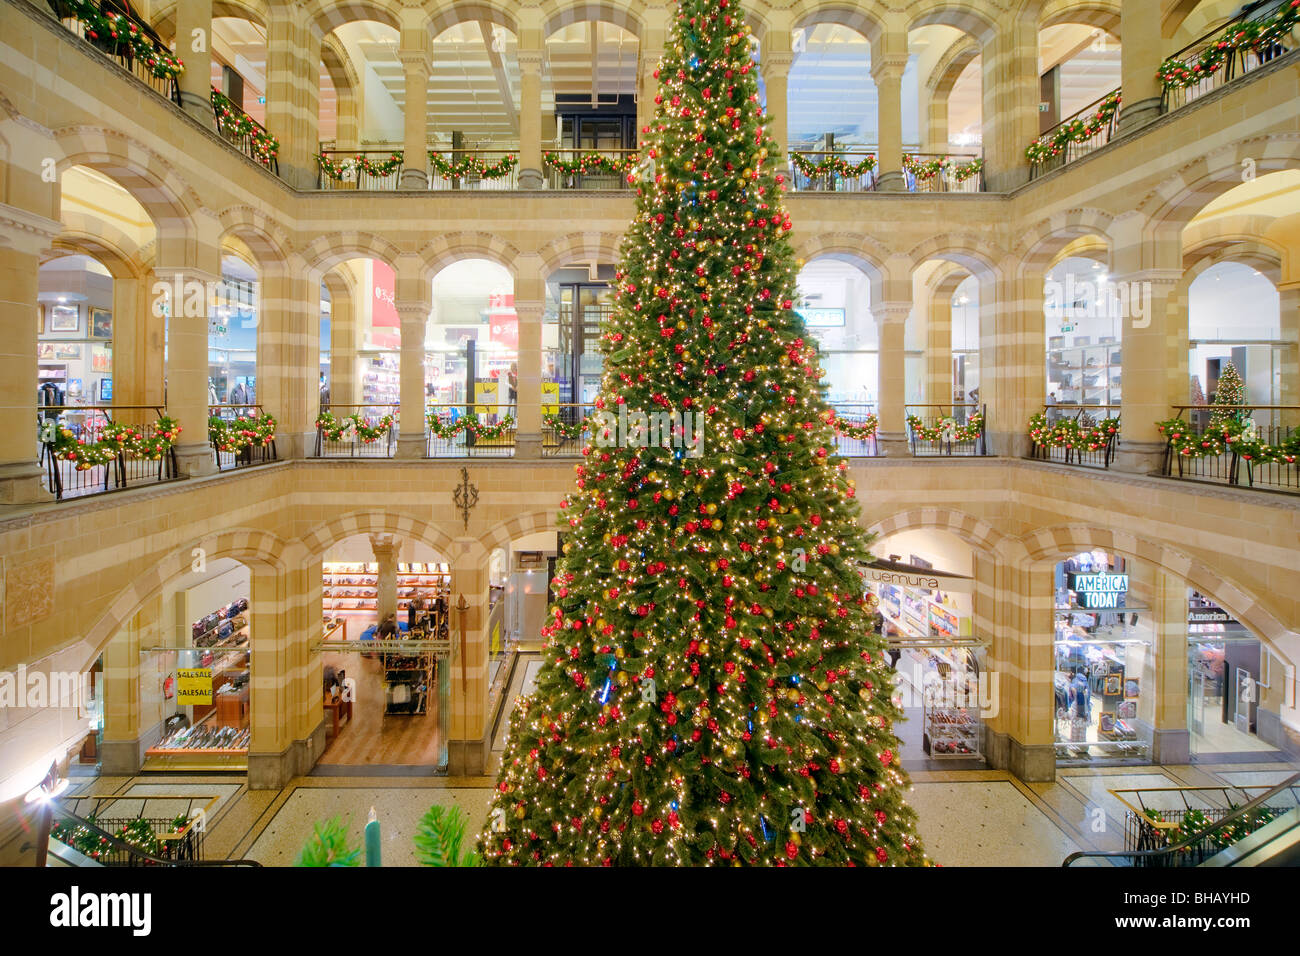 amsterdam indoor shopping mall magna plaza with christmas tree stock image - Mall Of America Christmas Decorations